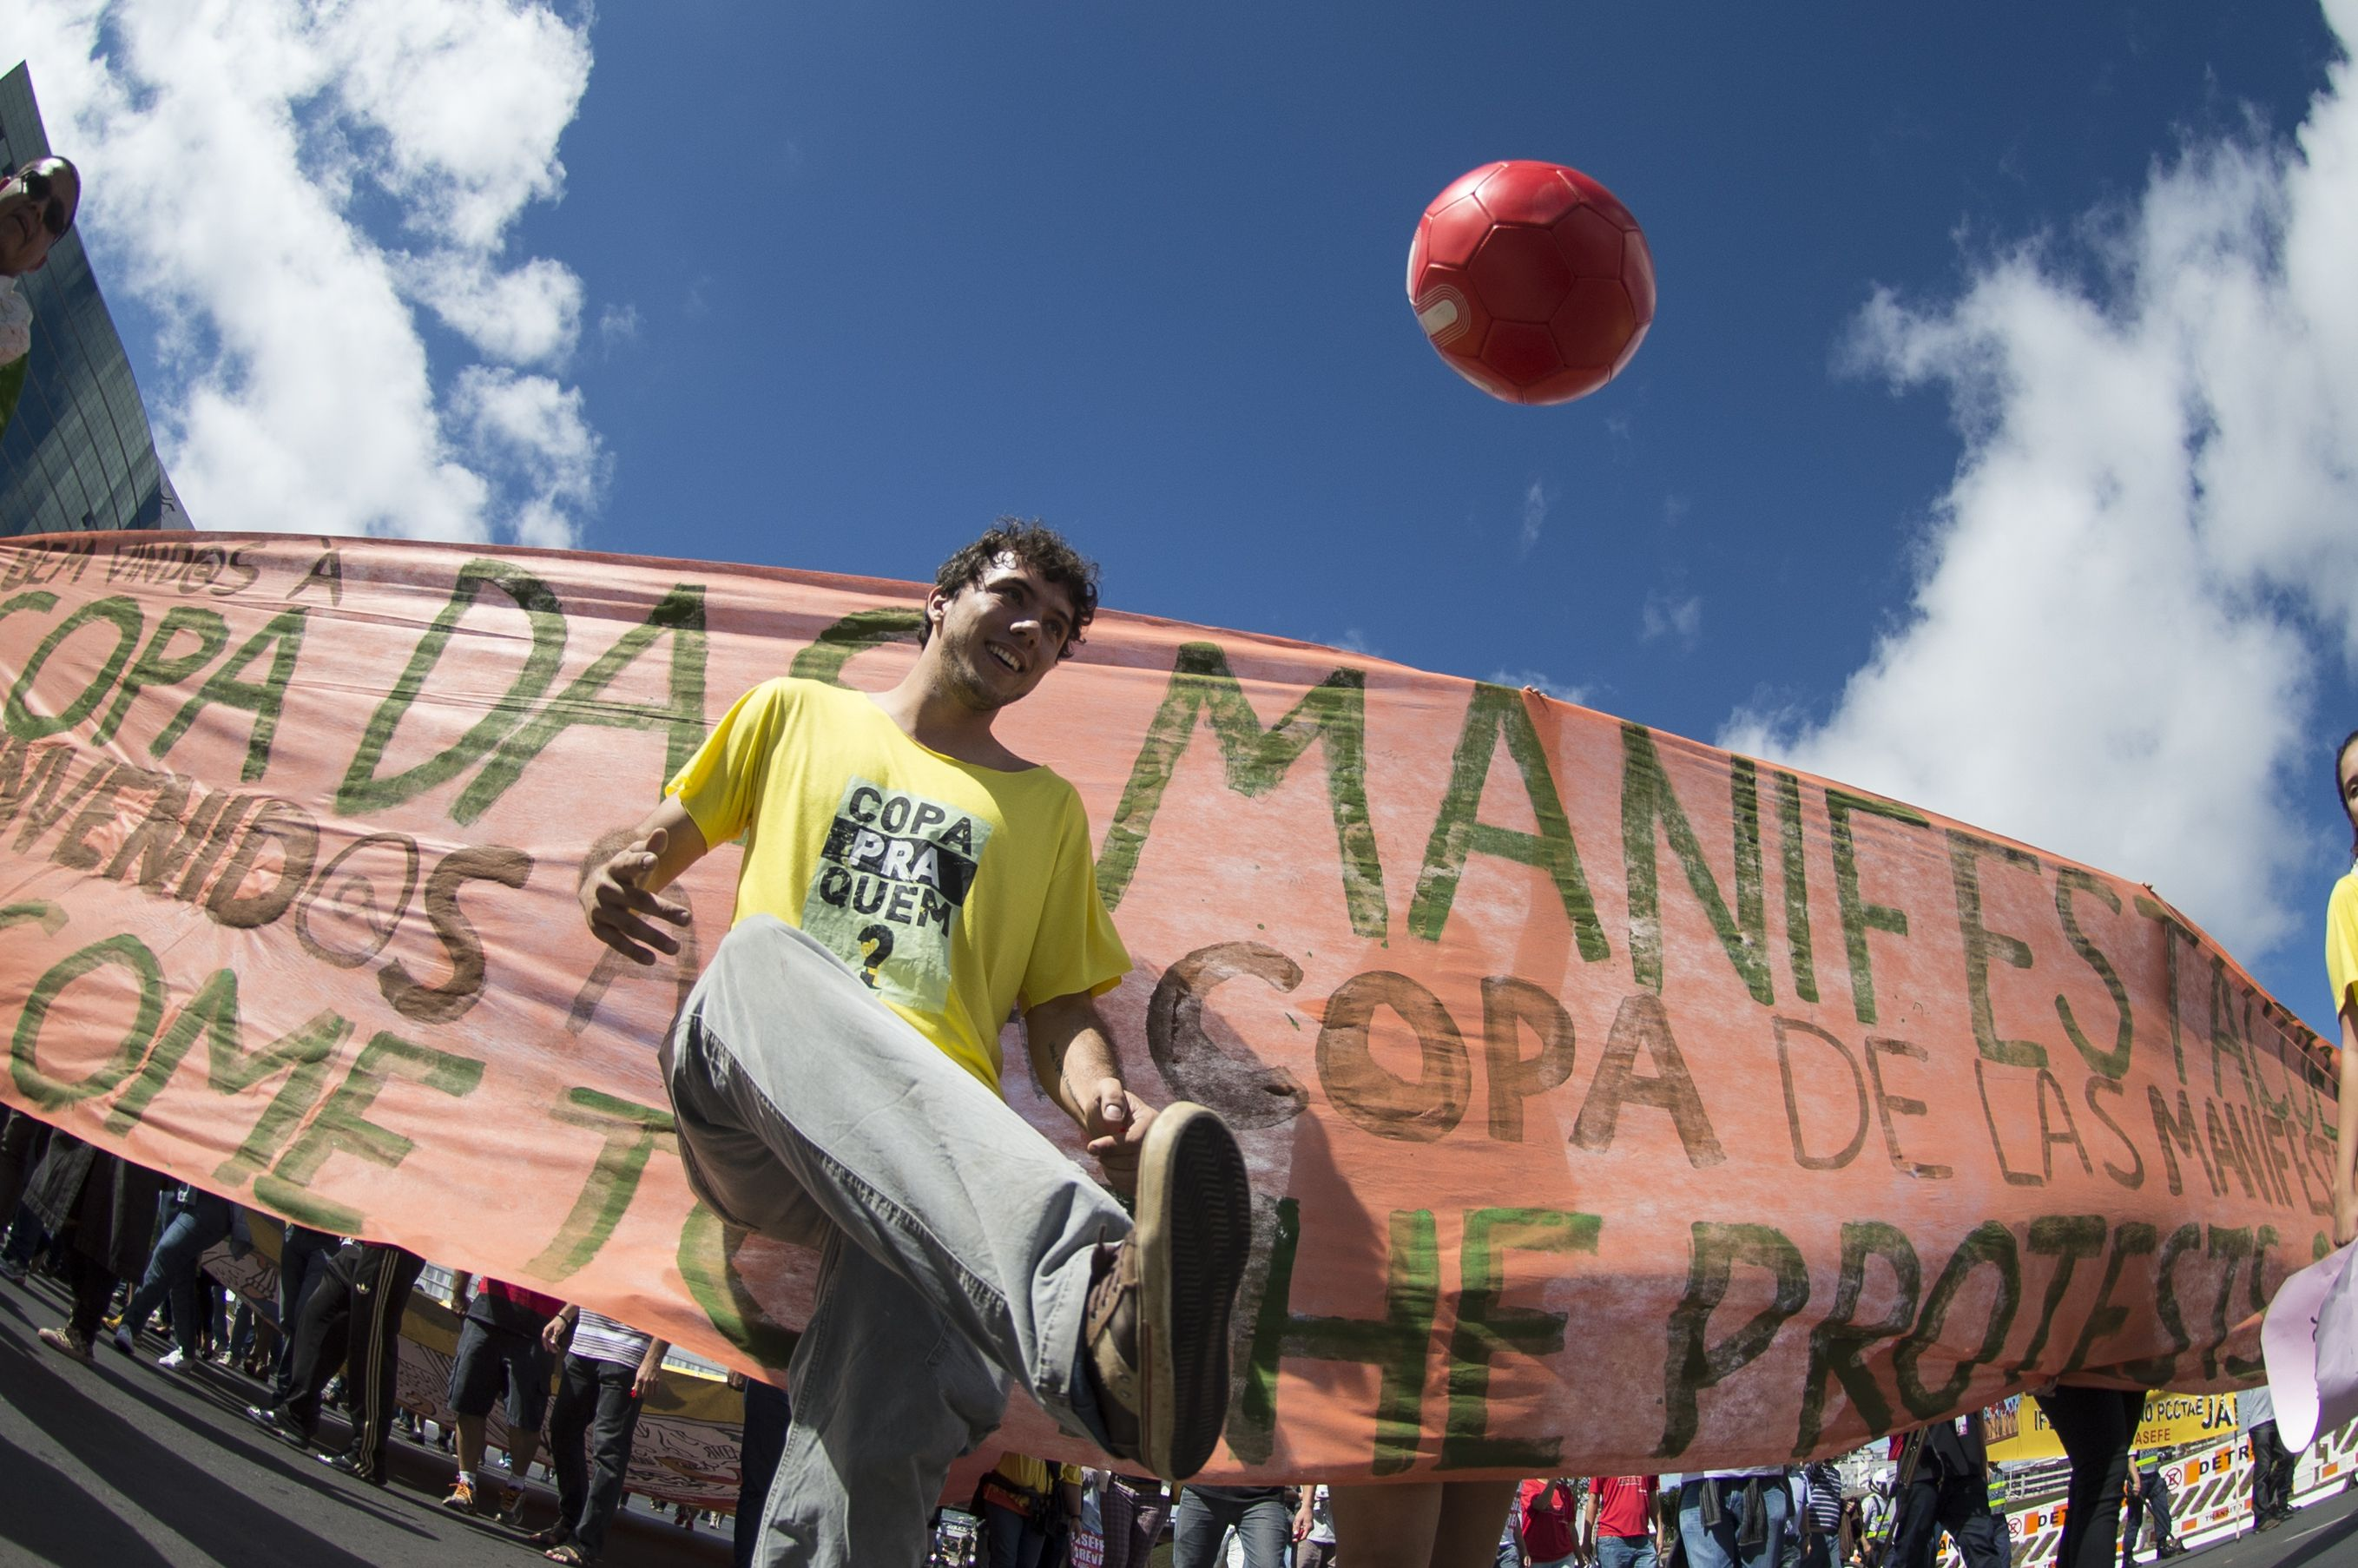 Protest against FIFA World Cup 2014 in Brasil_credit_Agencia Brasil